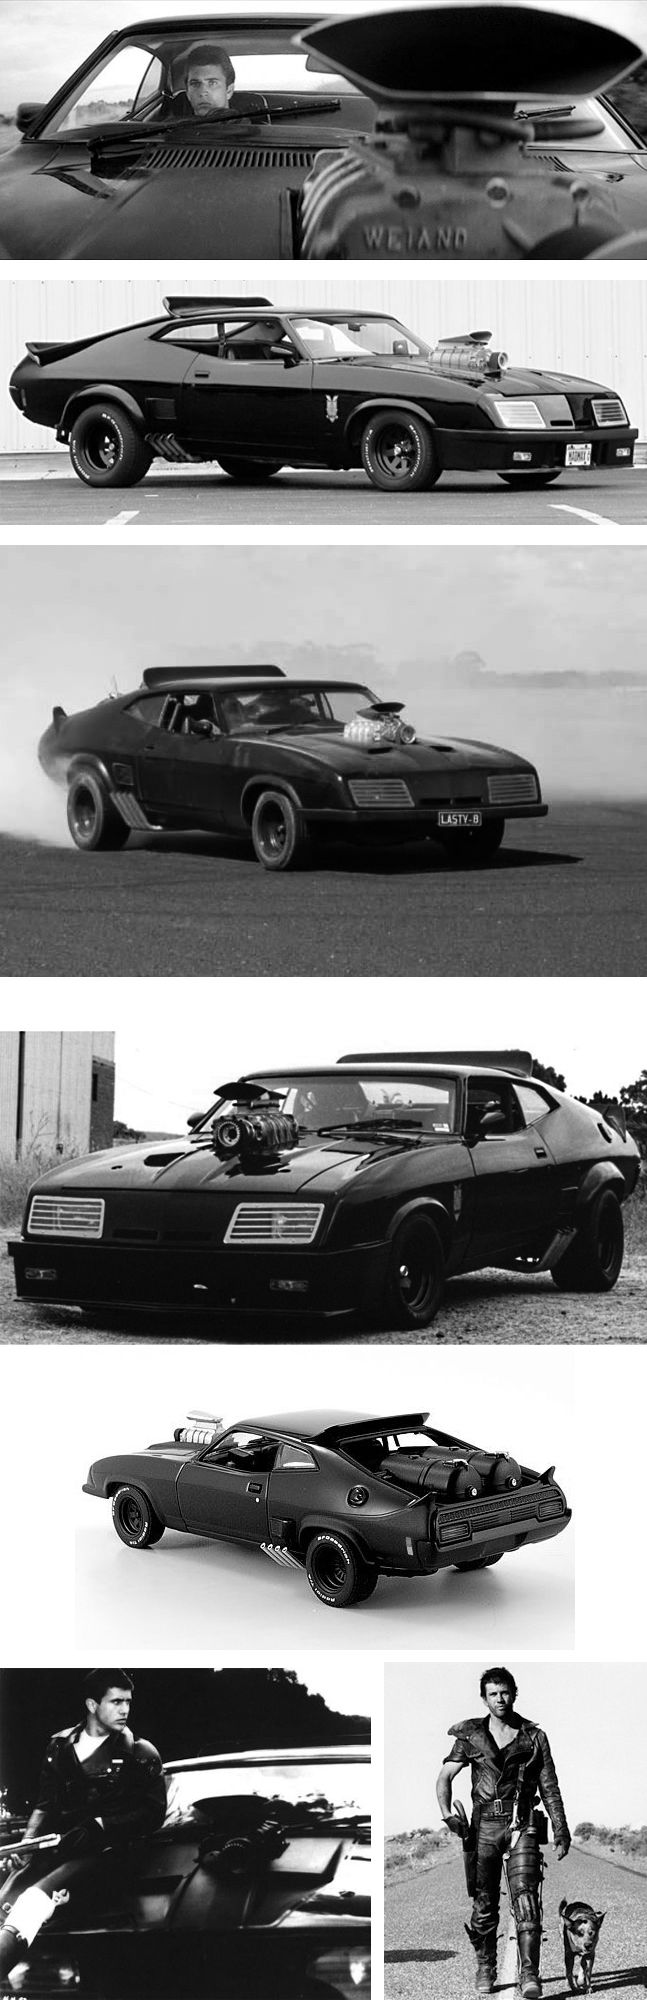 Before the vilification of cars and the #mad men who drove them. Ford Falcon XB GT V8 Interceptor - #Mad Max